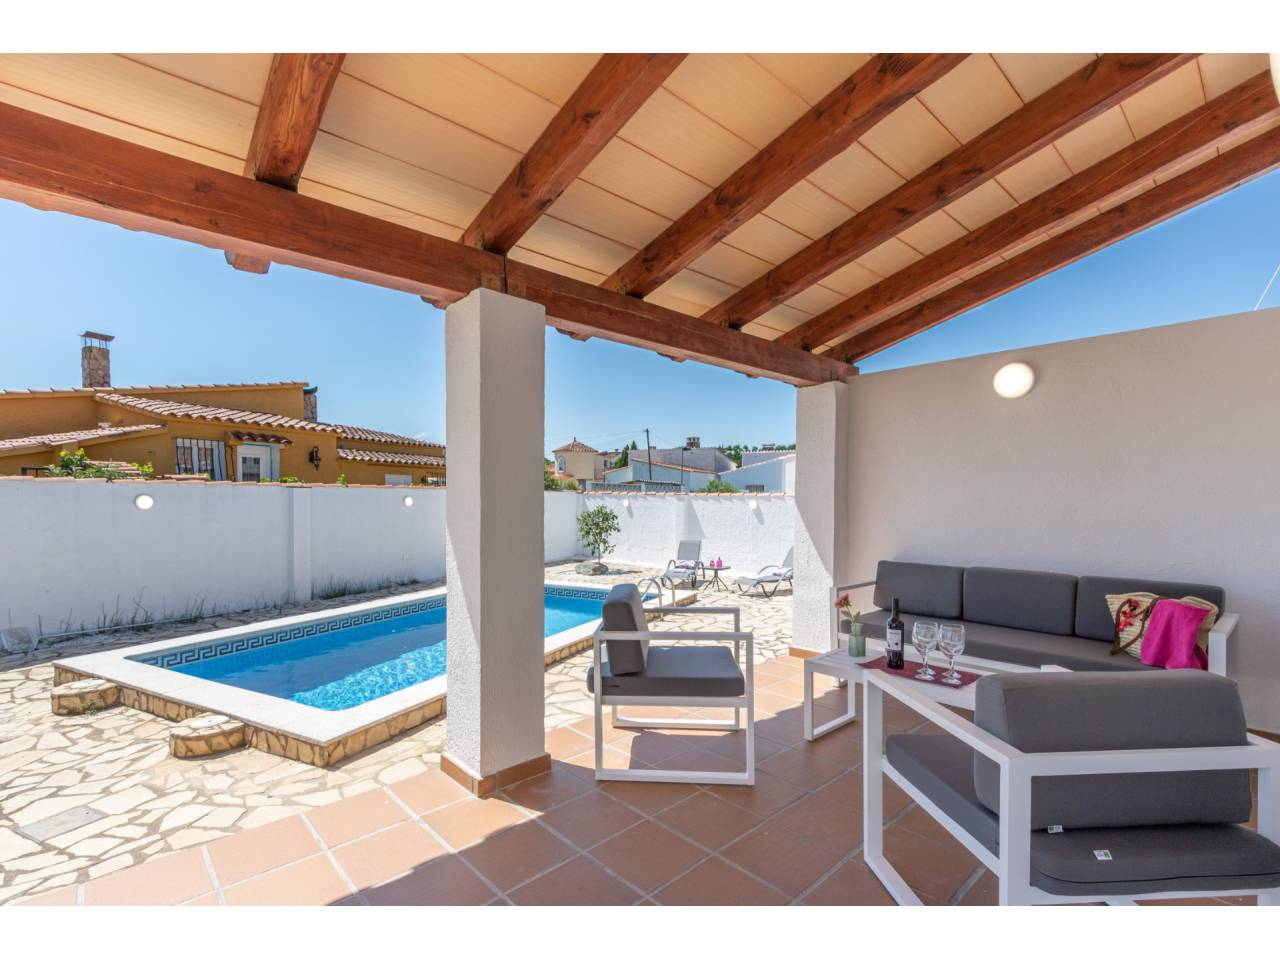 880005 - House for short-term rental in Empuriabrava